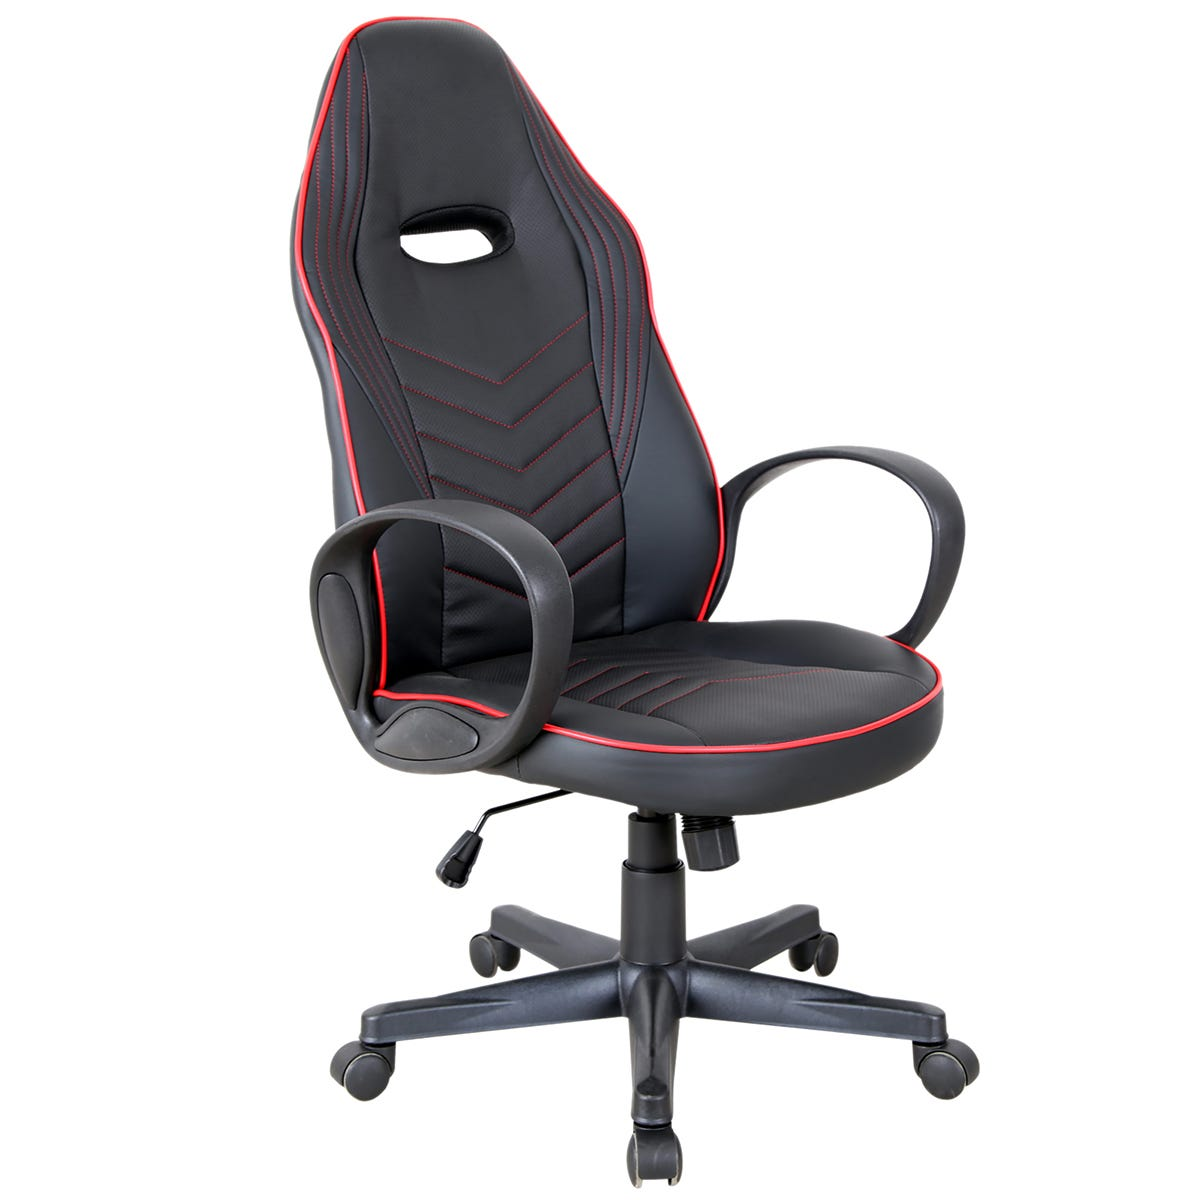 Equinox Pursuit PU Leather Gaming Chair - Black/Red